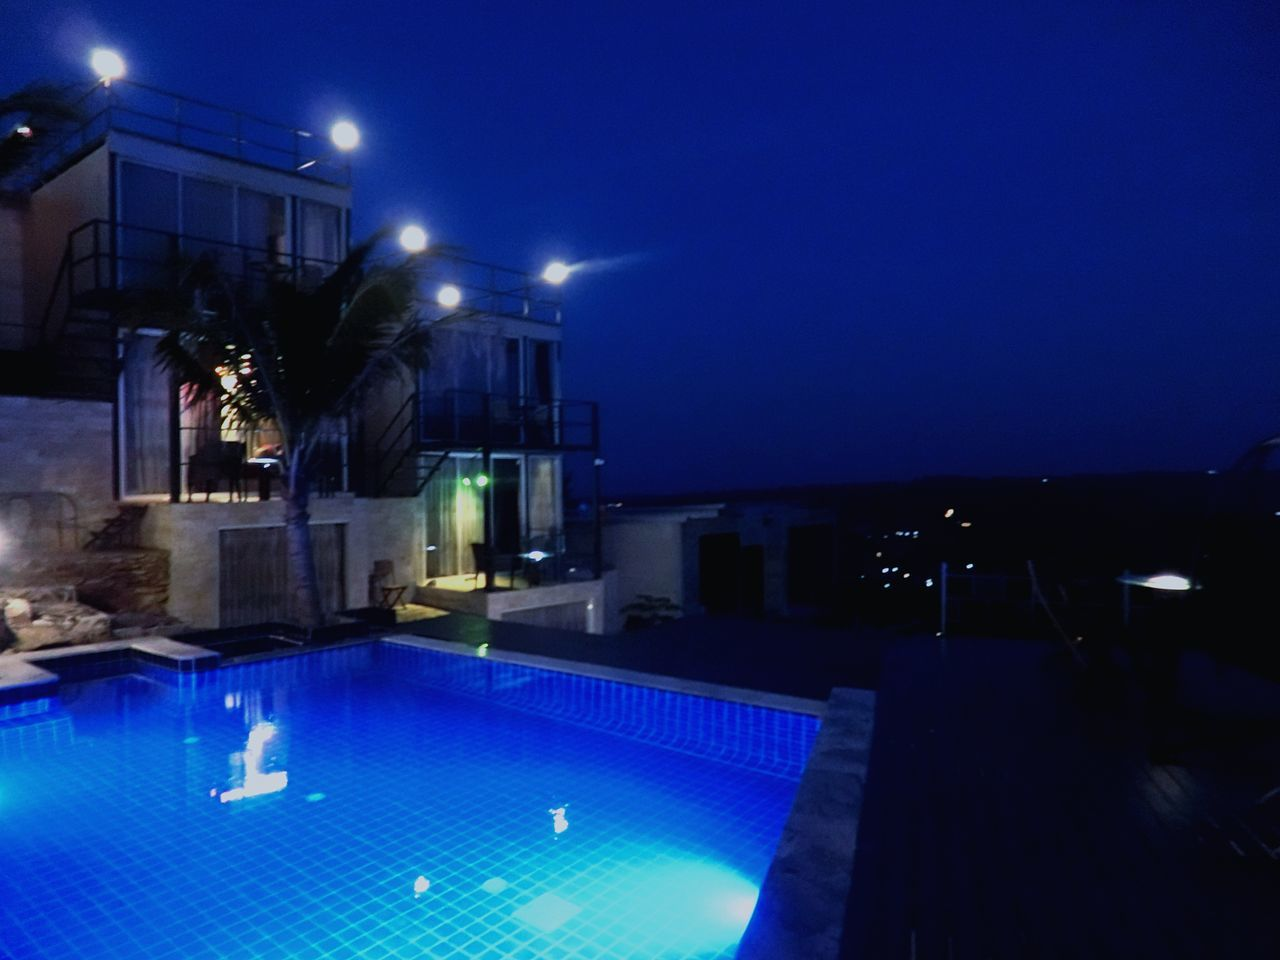 Blue Swimming Pool Illuminated Night Dark Building Exterior No People Blue Color The Resort ภูนางฟ้า